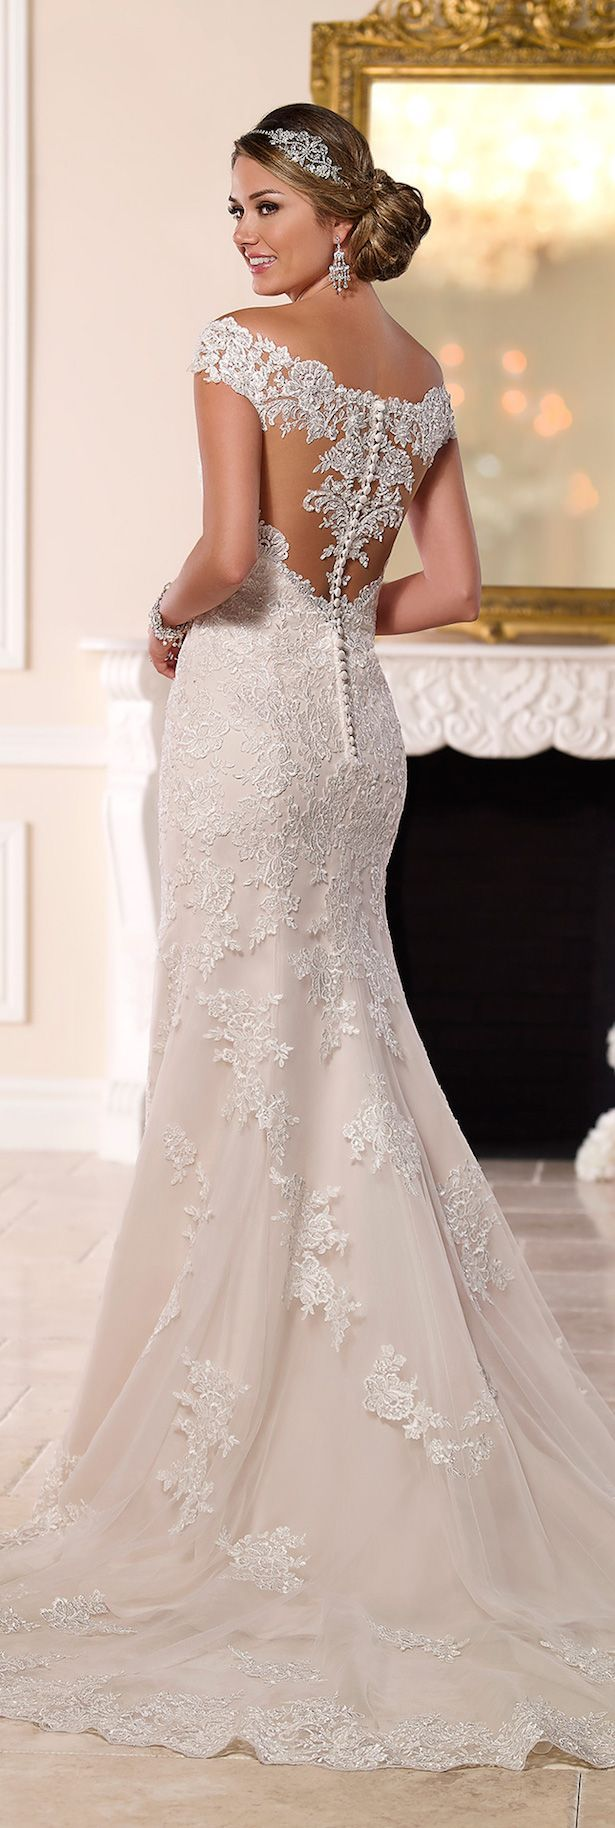 Dress designed by Stella York View Post View Gallery FIND A STORE